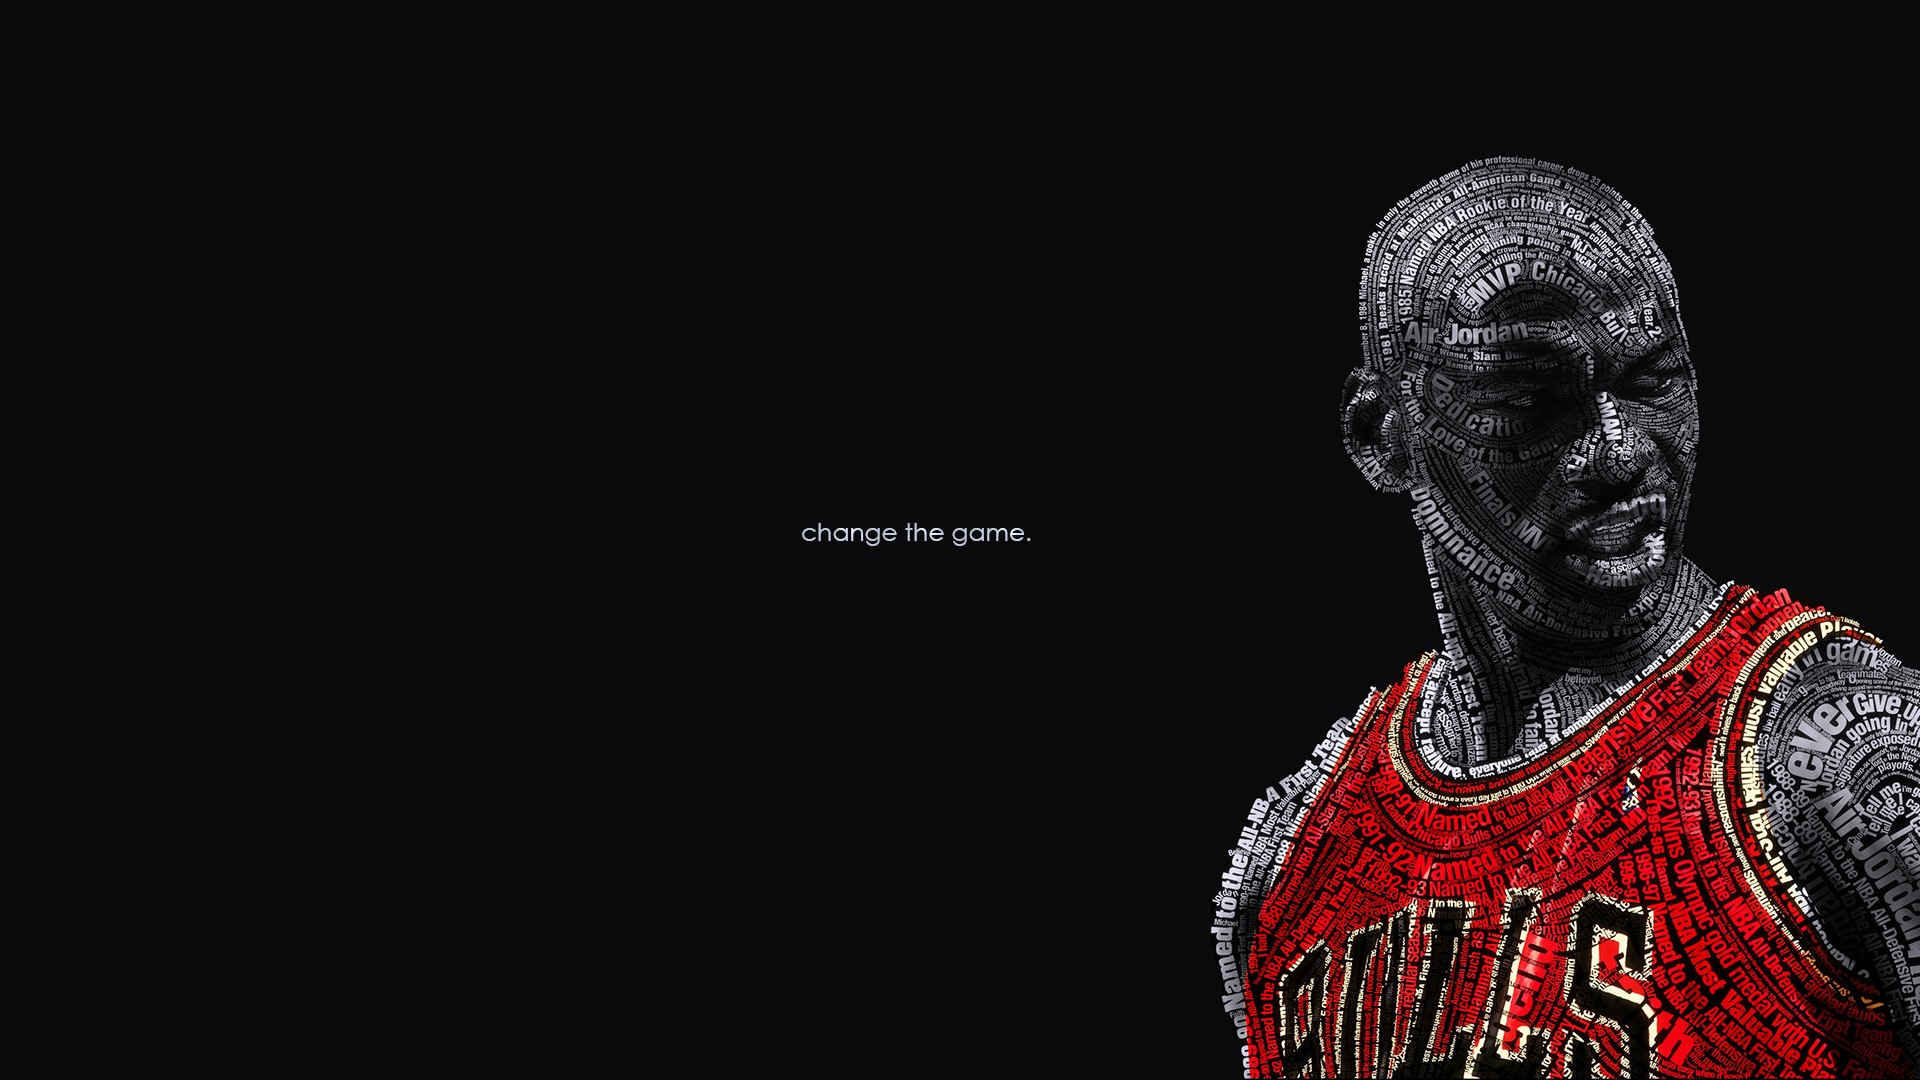 basketball wallpapers change the game